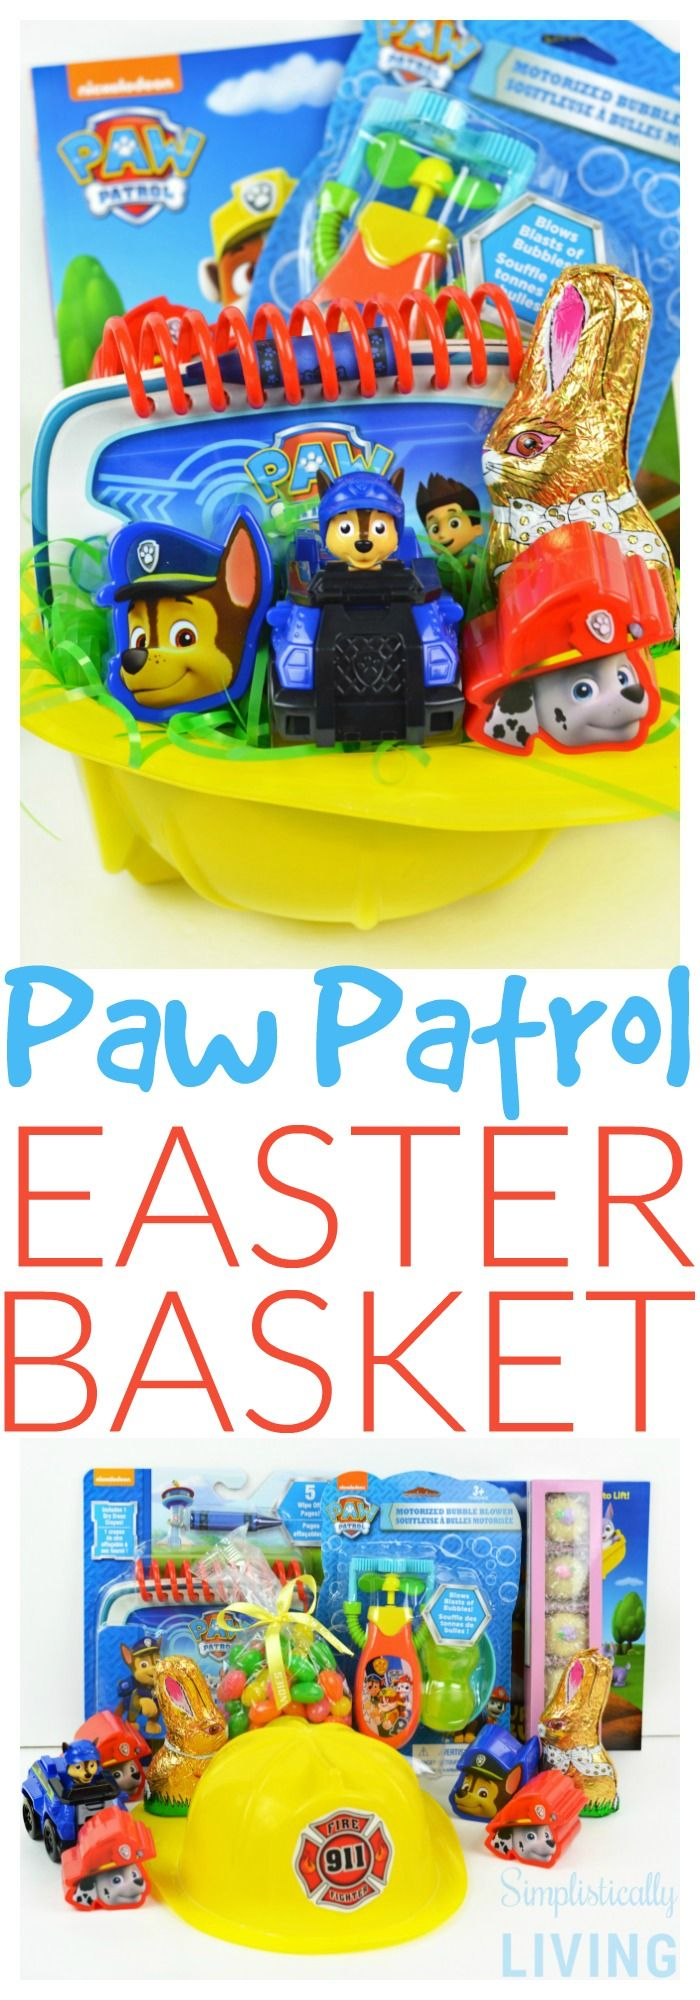 DIY Paw Patrol Easter Basket (For a Toddler) Simplistically Living #SeesCandies ...